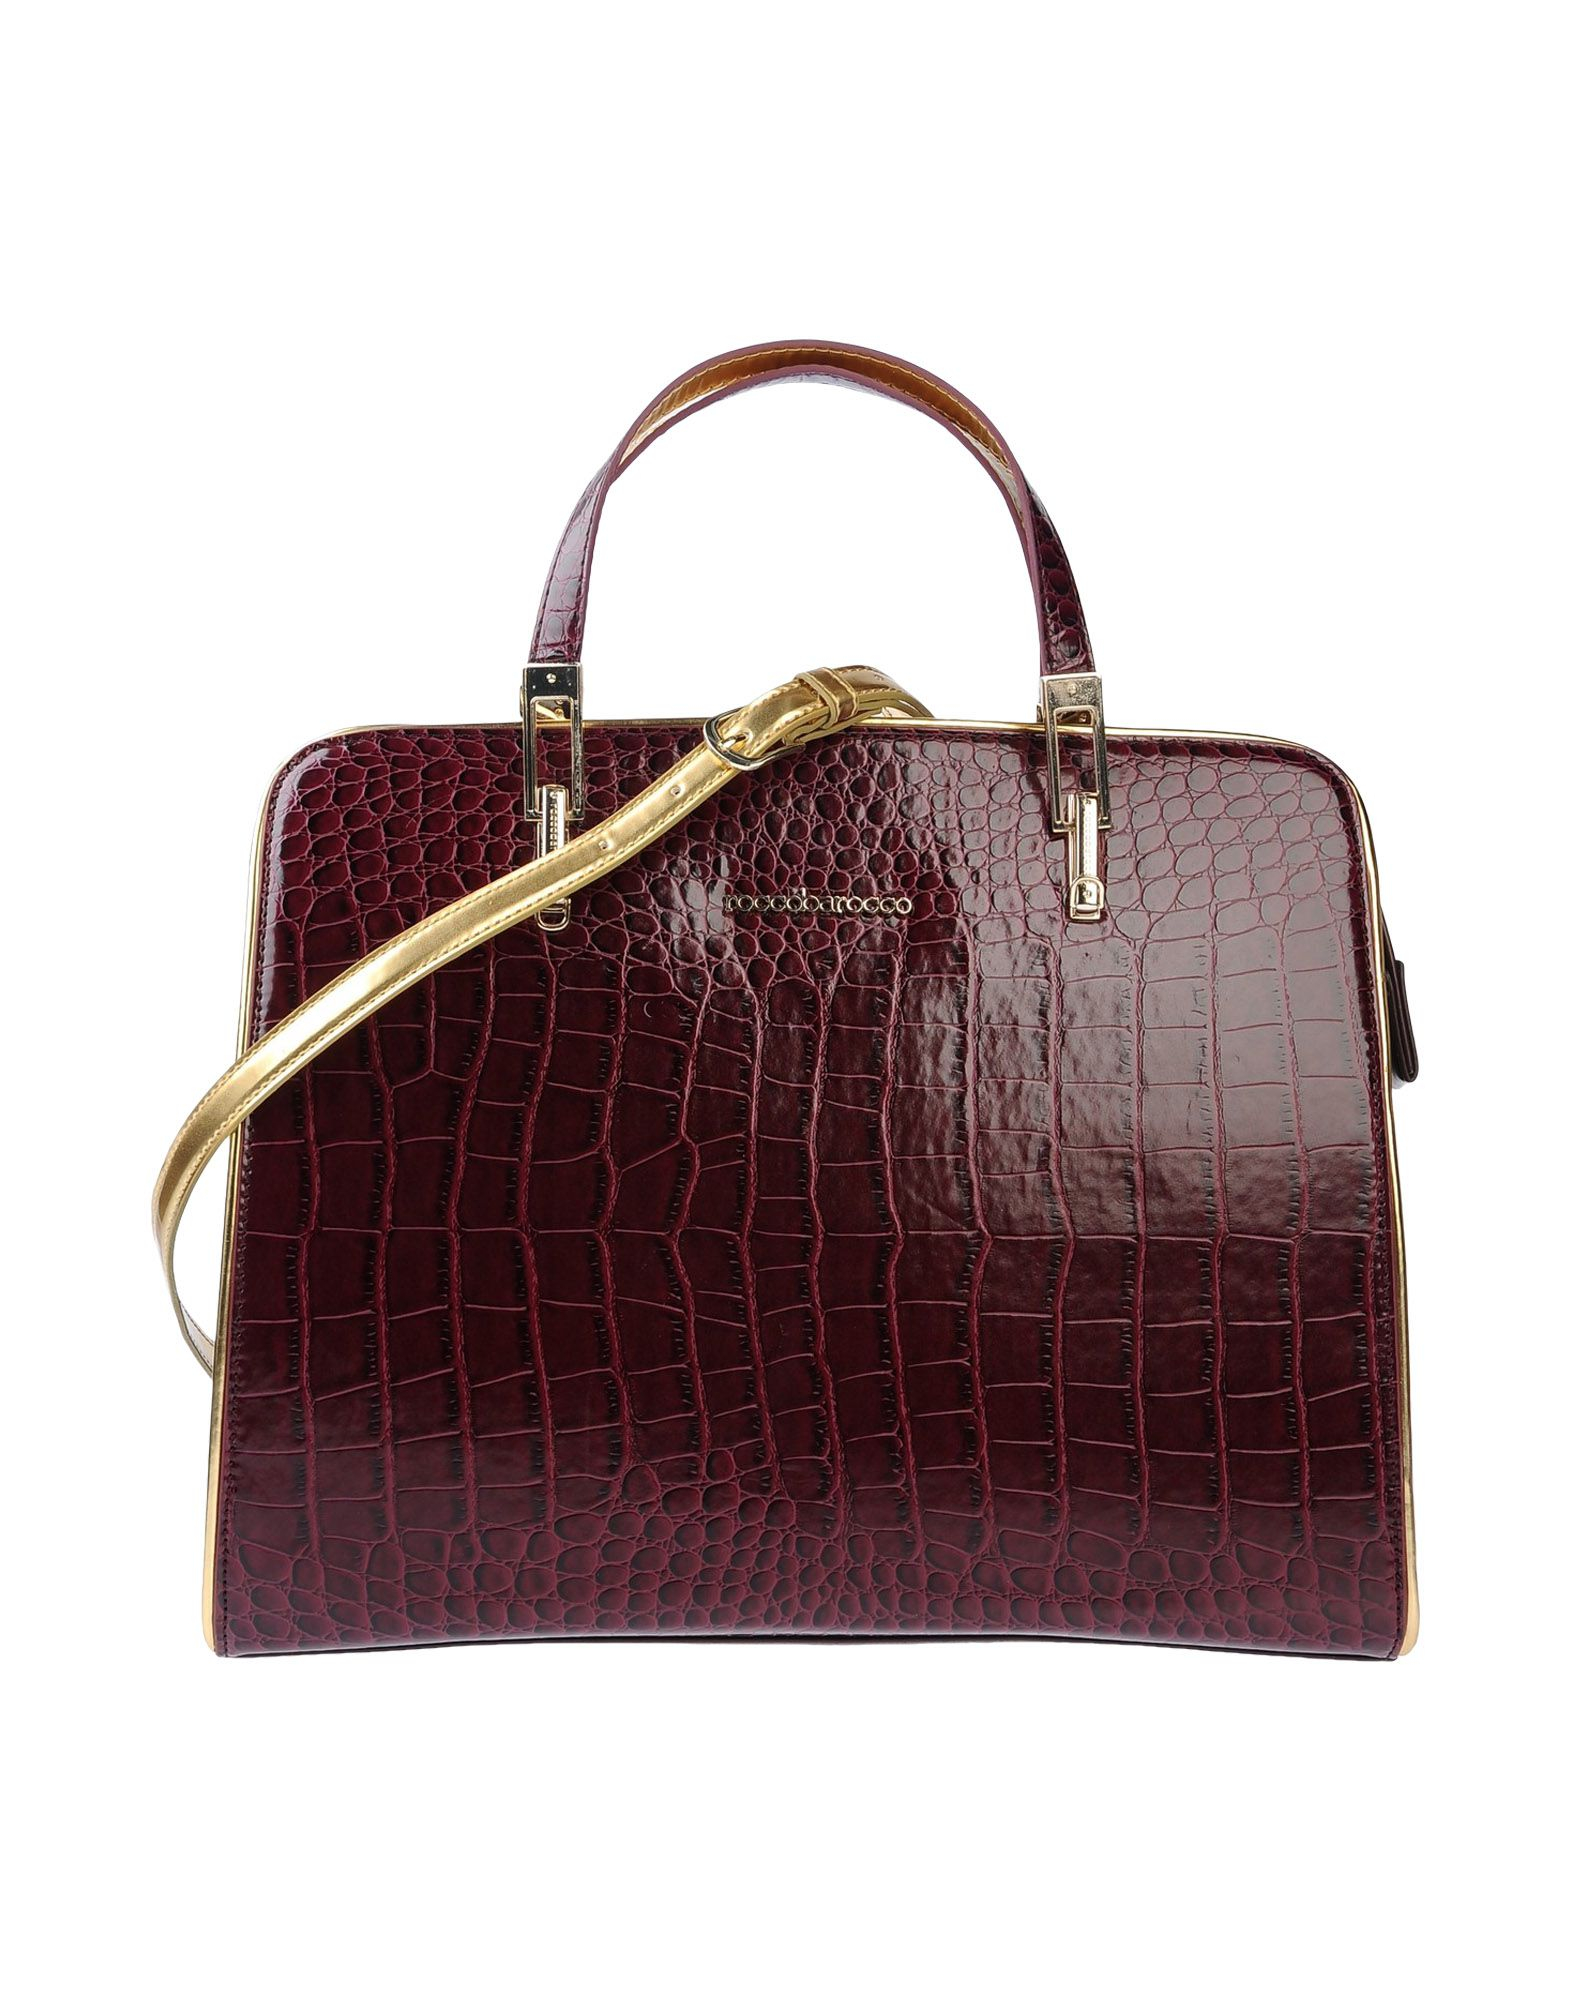 Roccobarocco Handbag in Purple (Garnet)